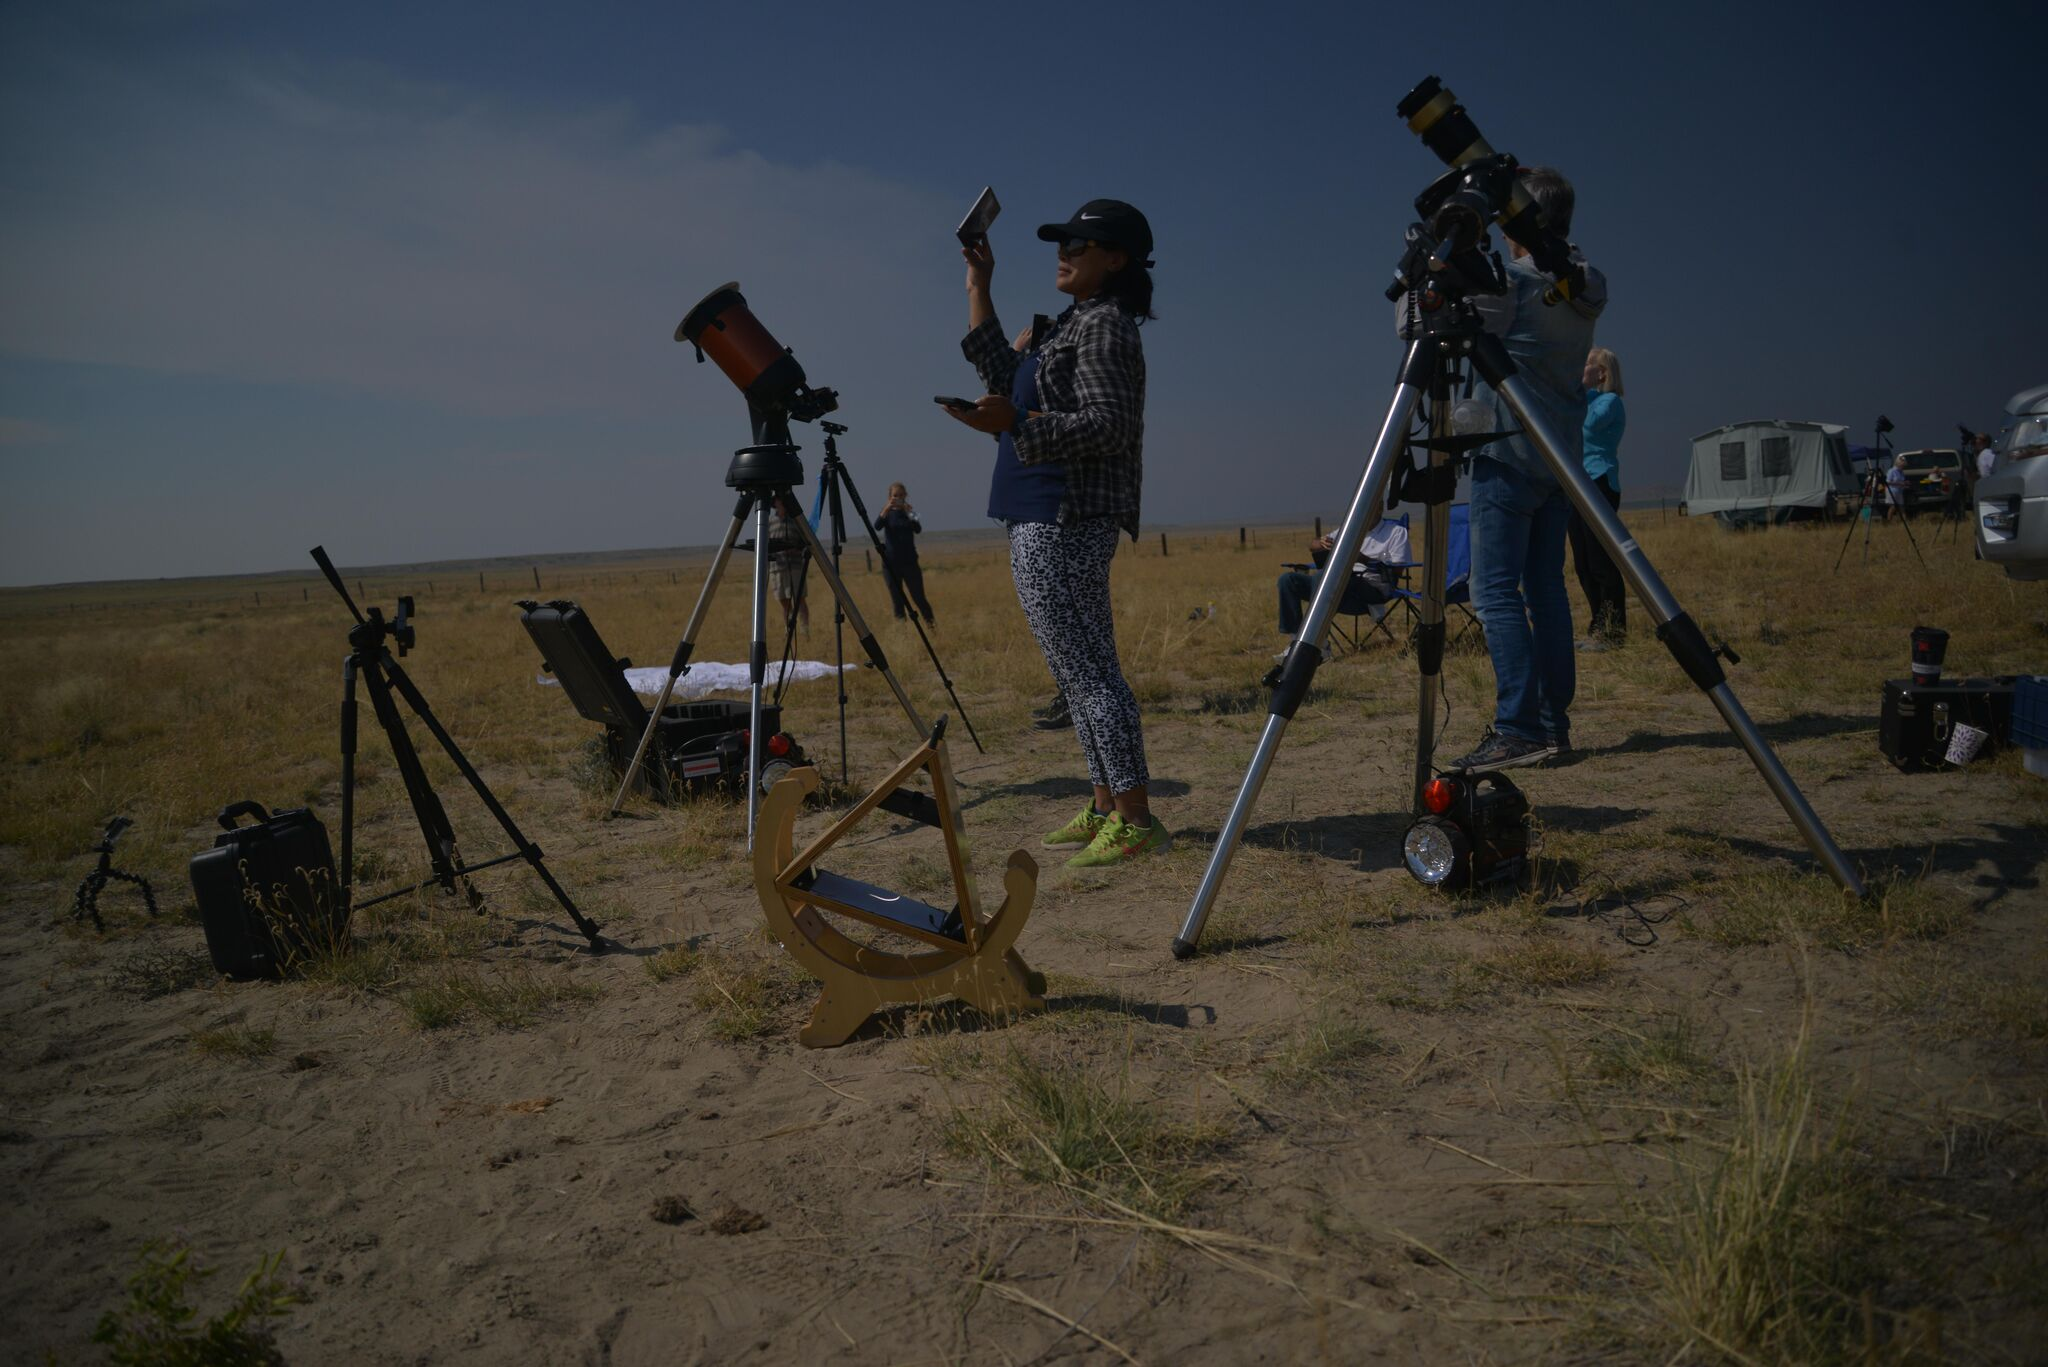 Shovit's setup in darkness in Shoshoni near full eclipse